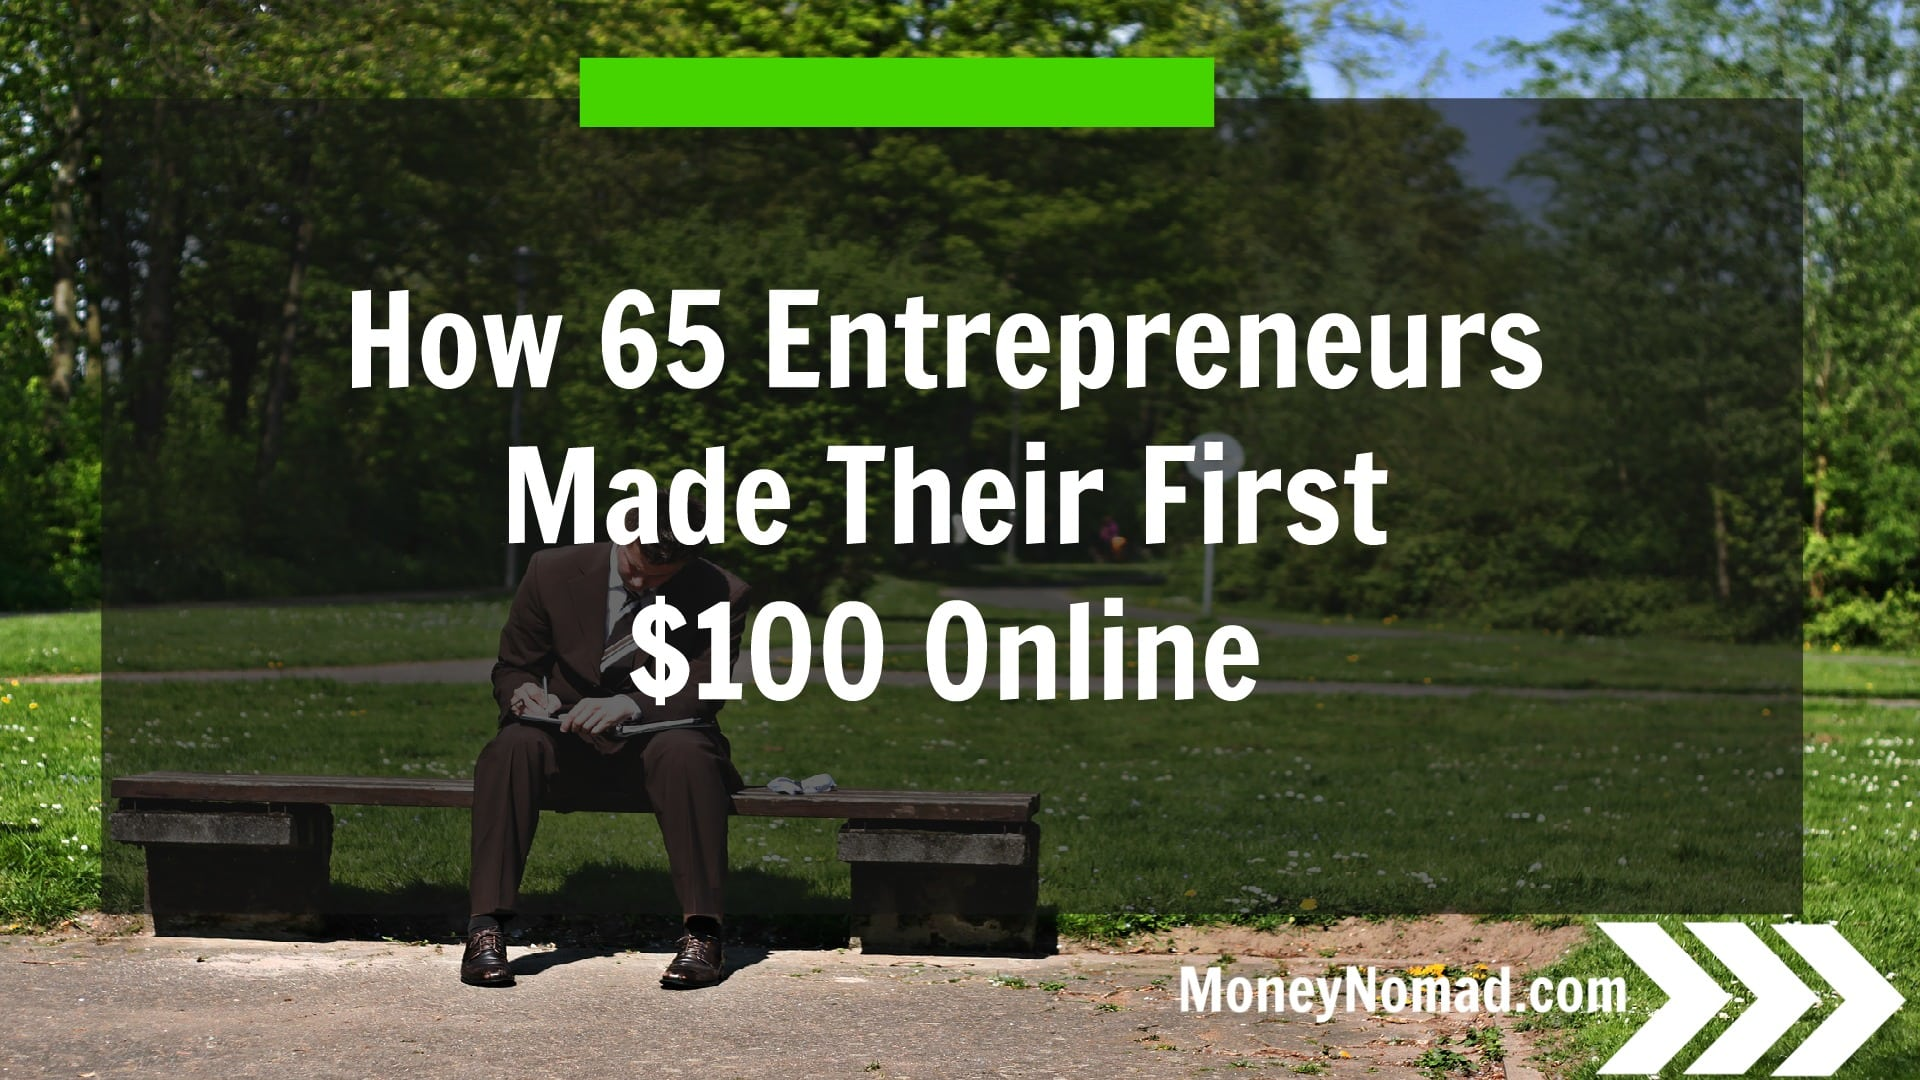 mn-how-65-entrepreneurs-made-their-first-100-online